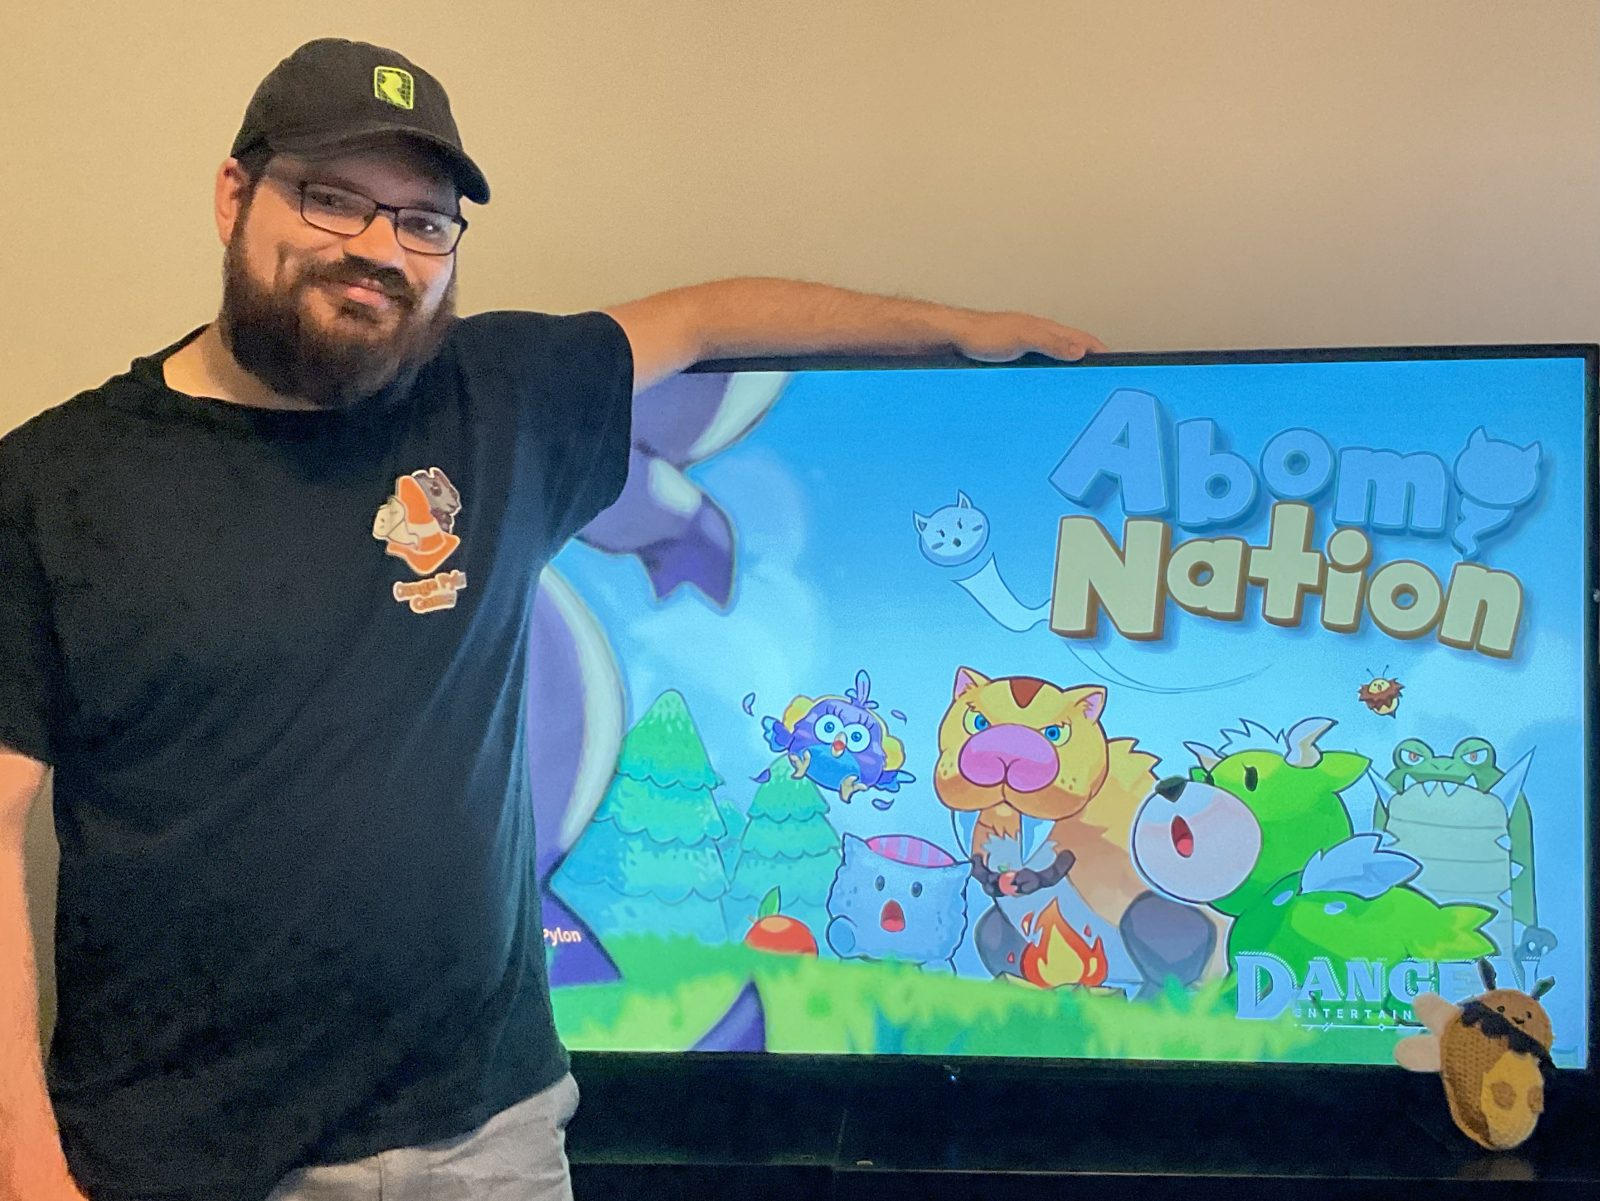 Cornwall native ready to release innovative video game